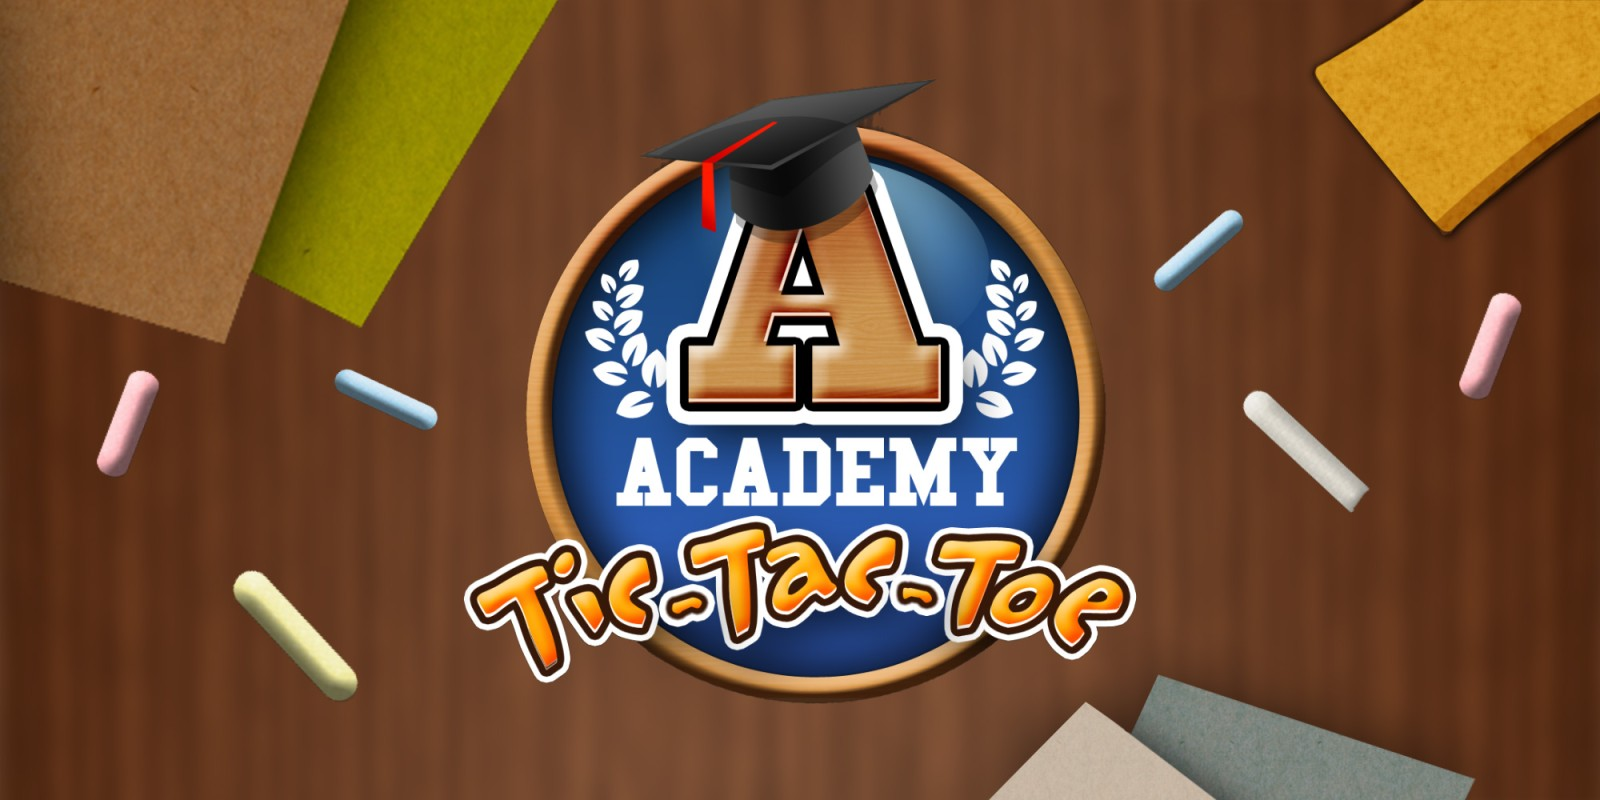 Academy: Tic-Tac-Toe Noughts and Crosses